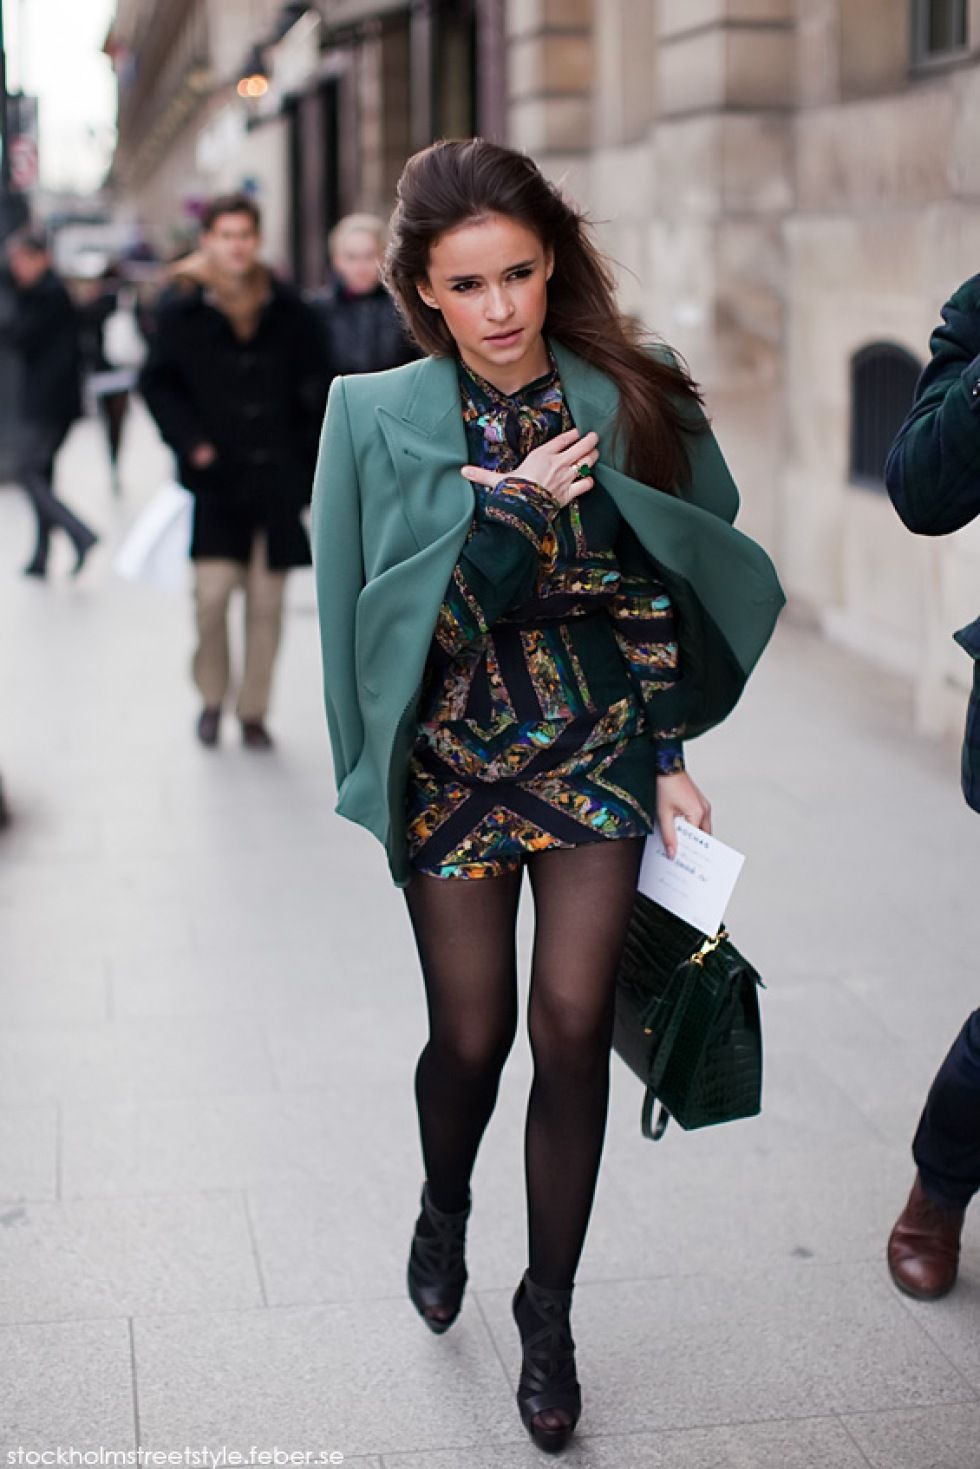 Throwback thursday street style with 23 great looks from fashion icon Miroslava Duma. Which are your favorite looks in the image gallery?